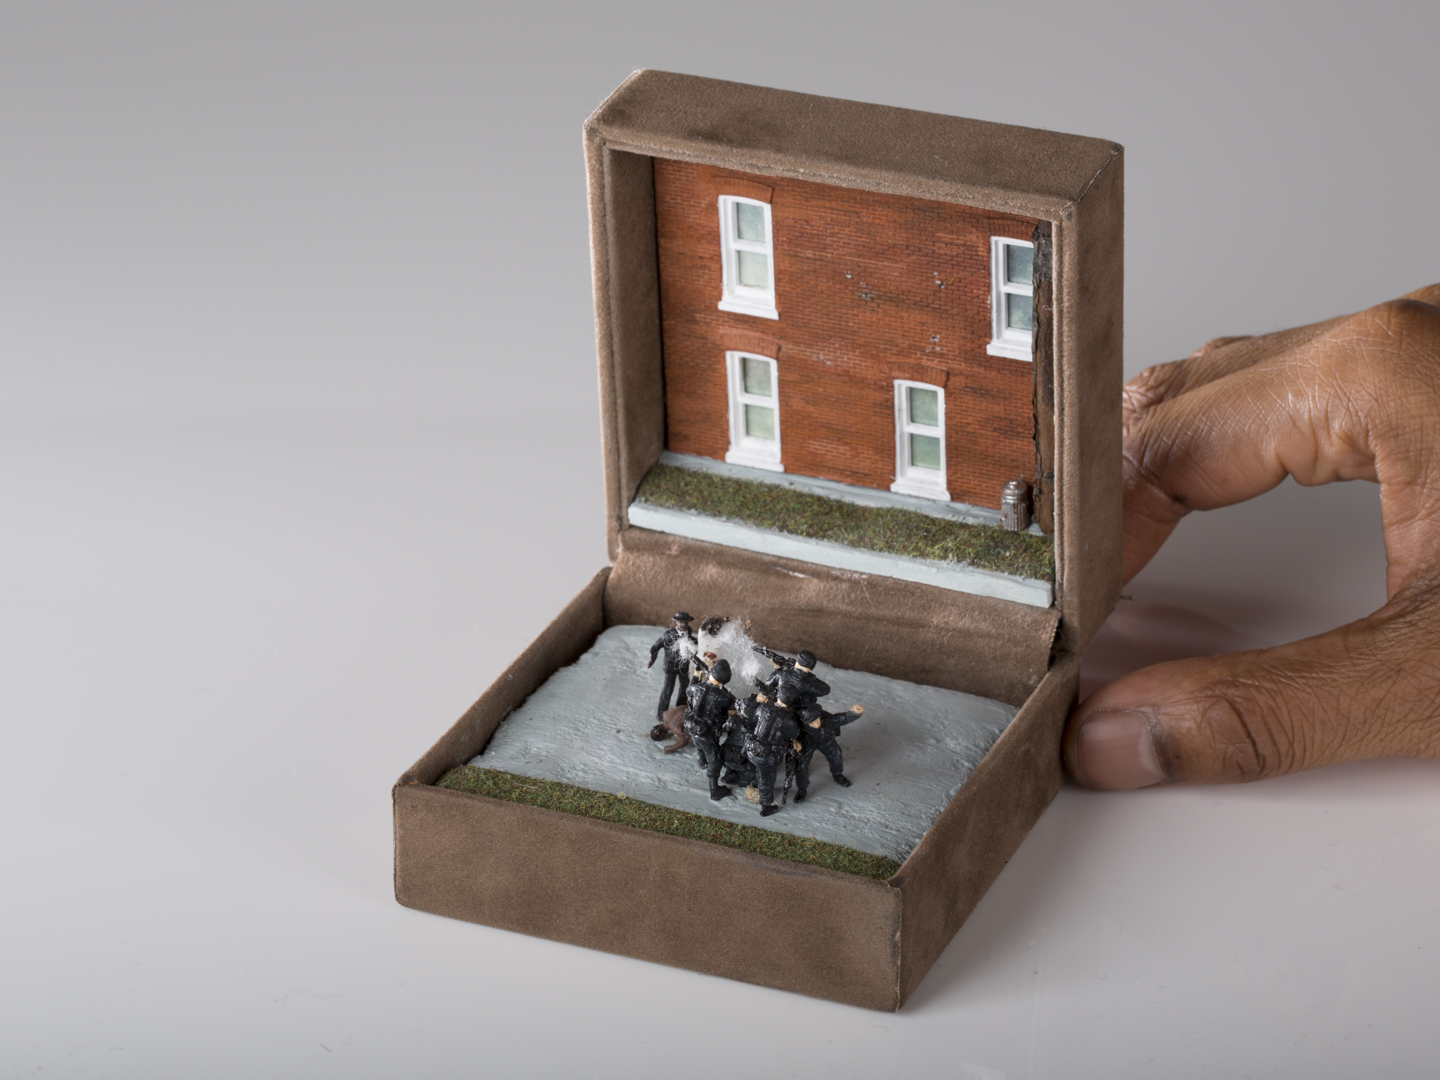 TALWST,  The Execution Of Michael Brown , Reclaimed 2000's ring box, model putty, plastic, sculpey, acrylic paint, enamel paint, gouache, spray paint, paper, cotton, grass, tree branch, 2014. Photo by Todd Duym.